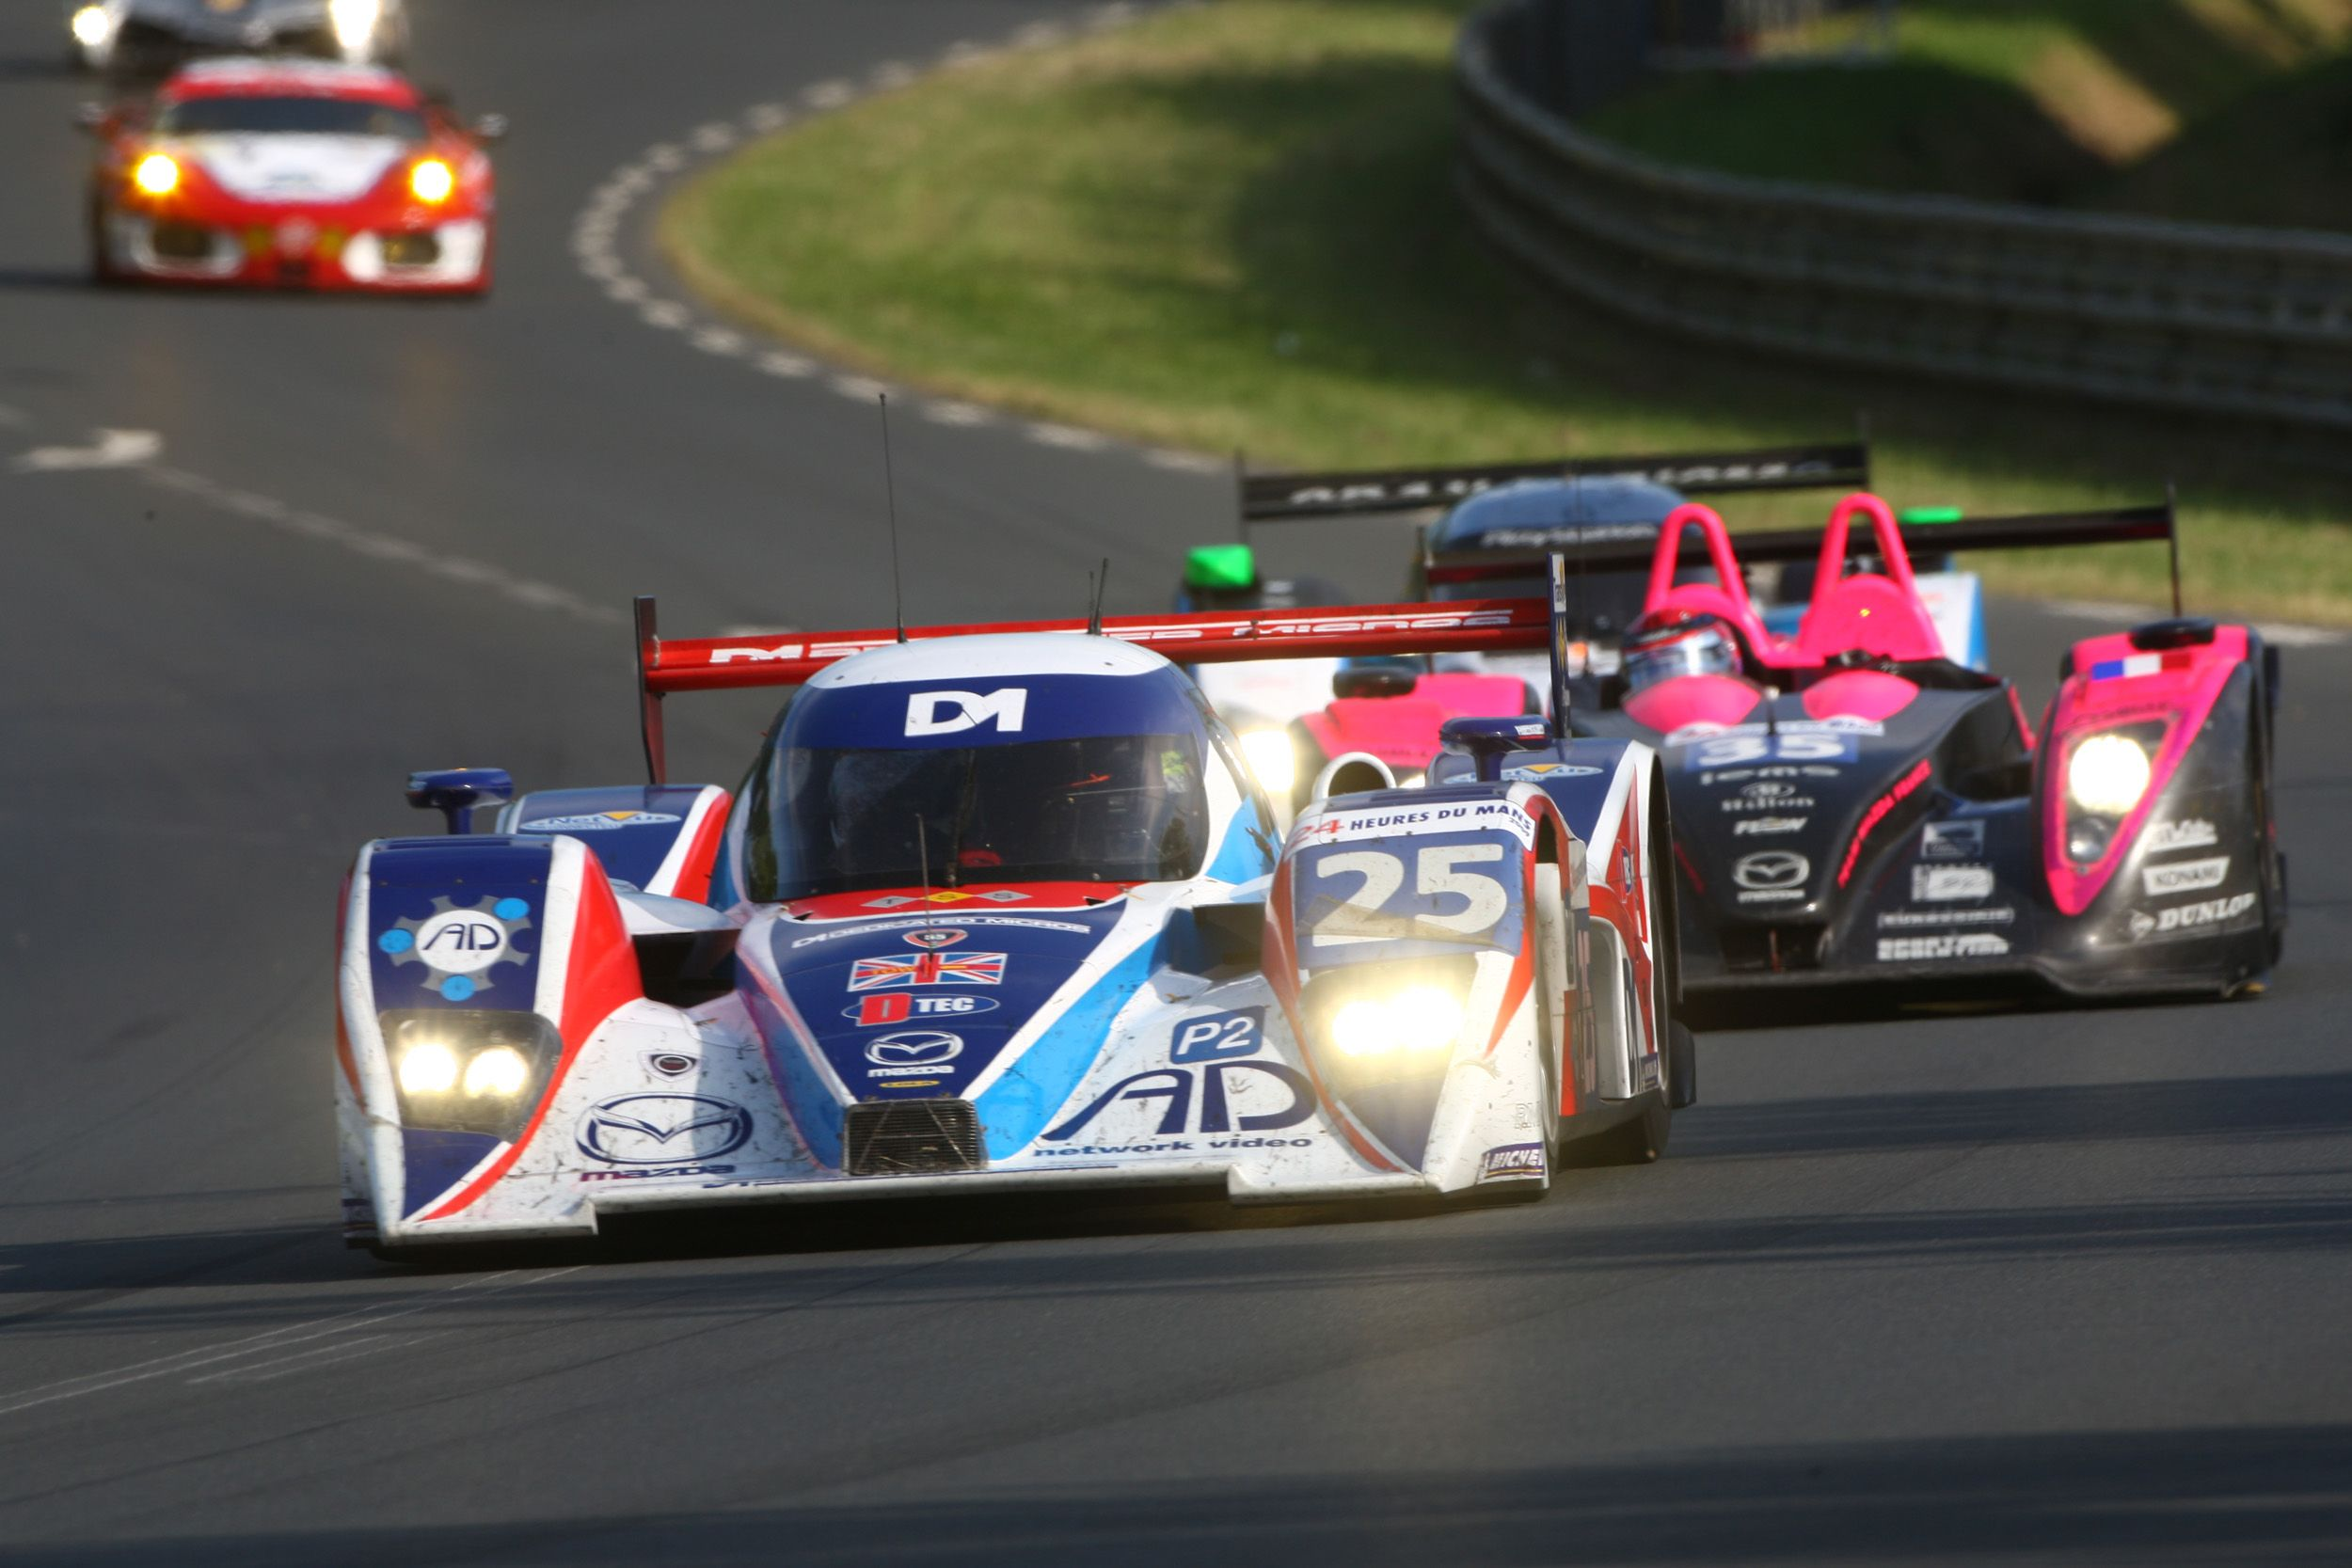 Pin by maurits van veen on autos   Pinterest   Le mans, Sports cars ...